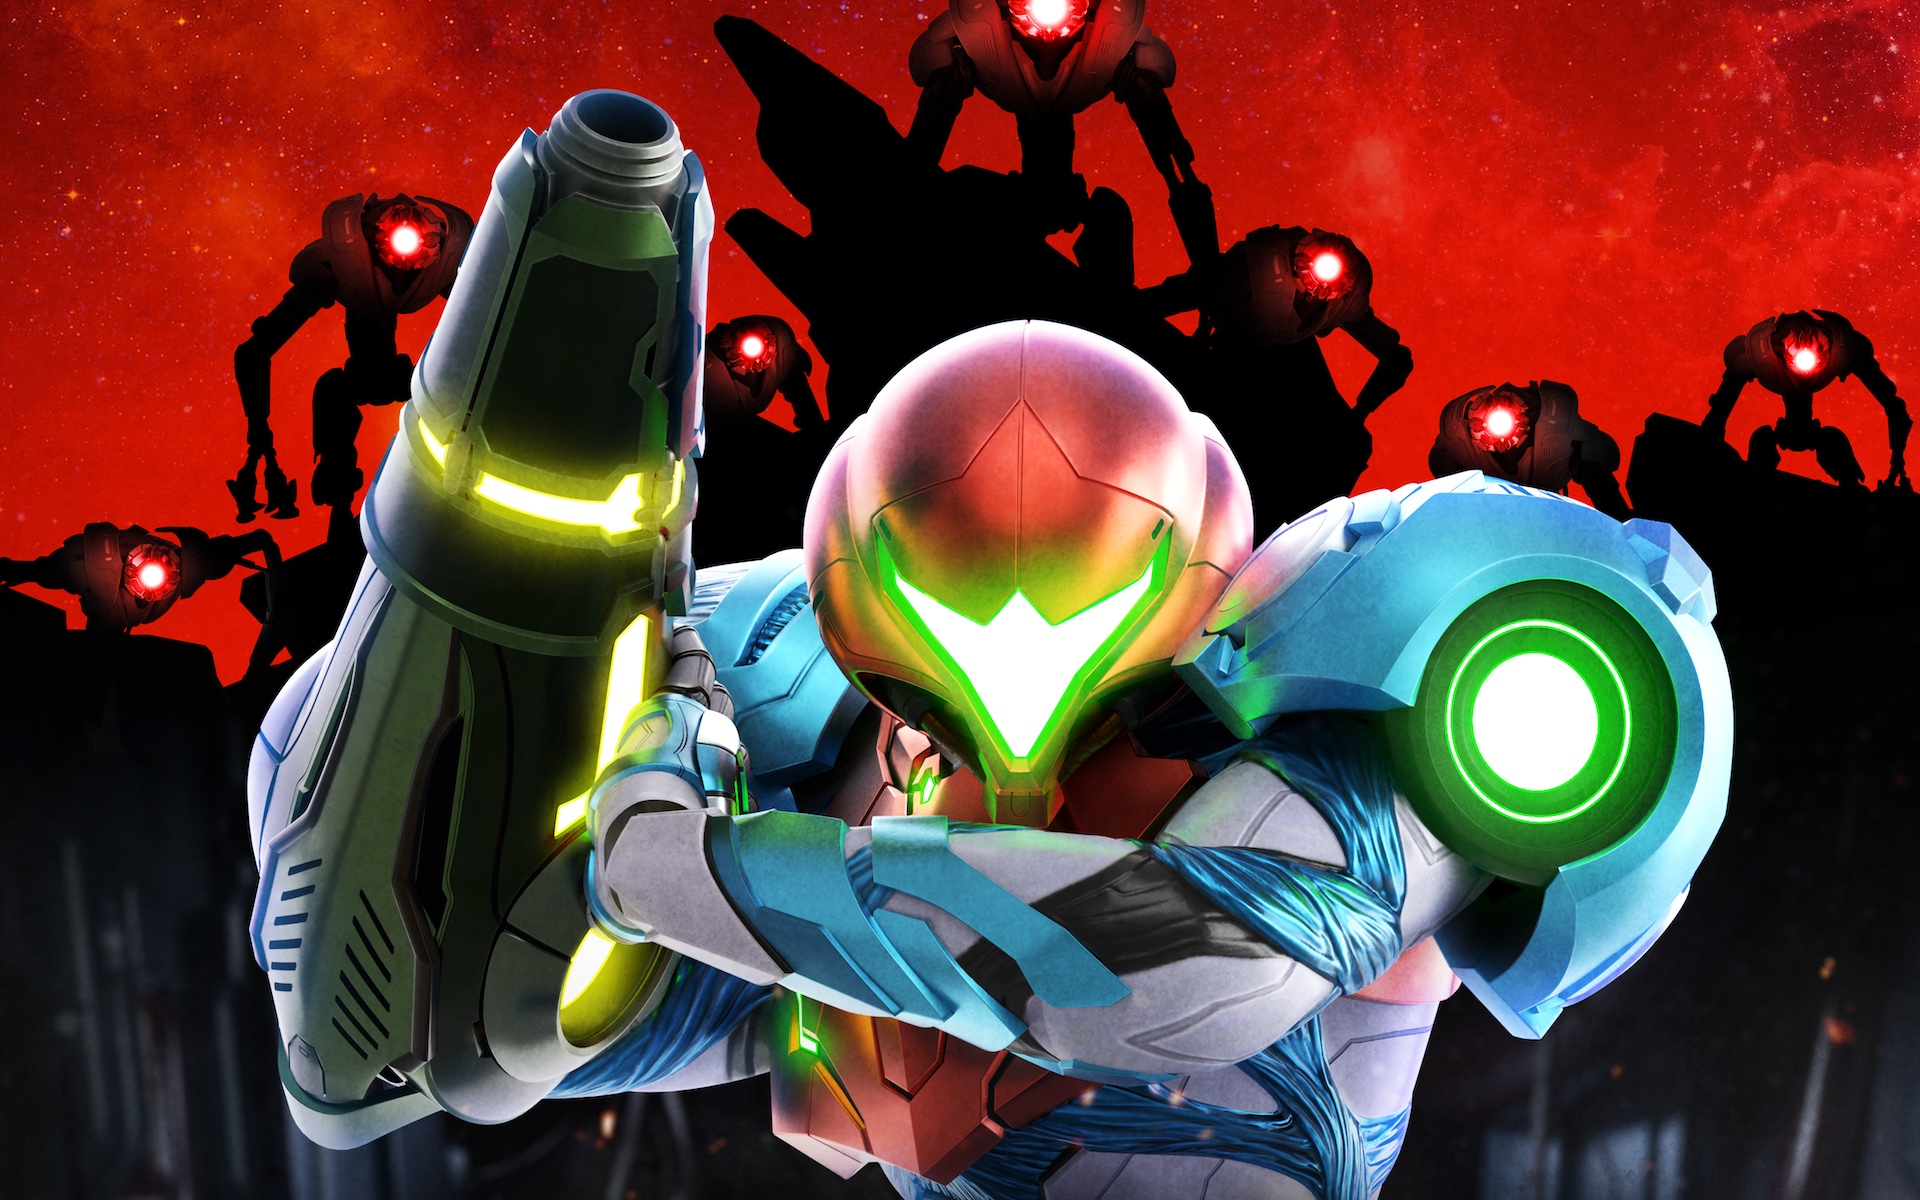 Artwork of Samus Aran surrounded by EMMI in the cover art for Metroid Dread